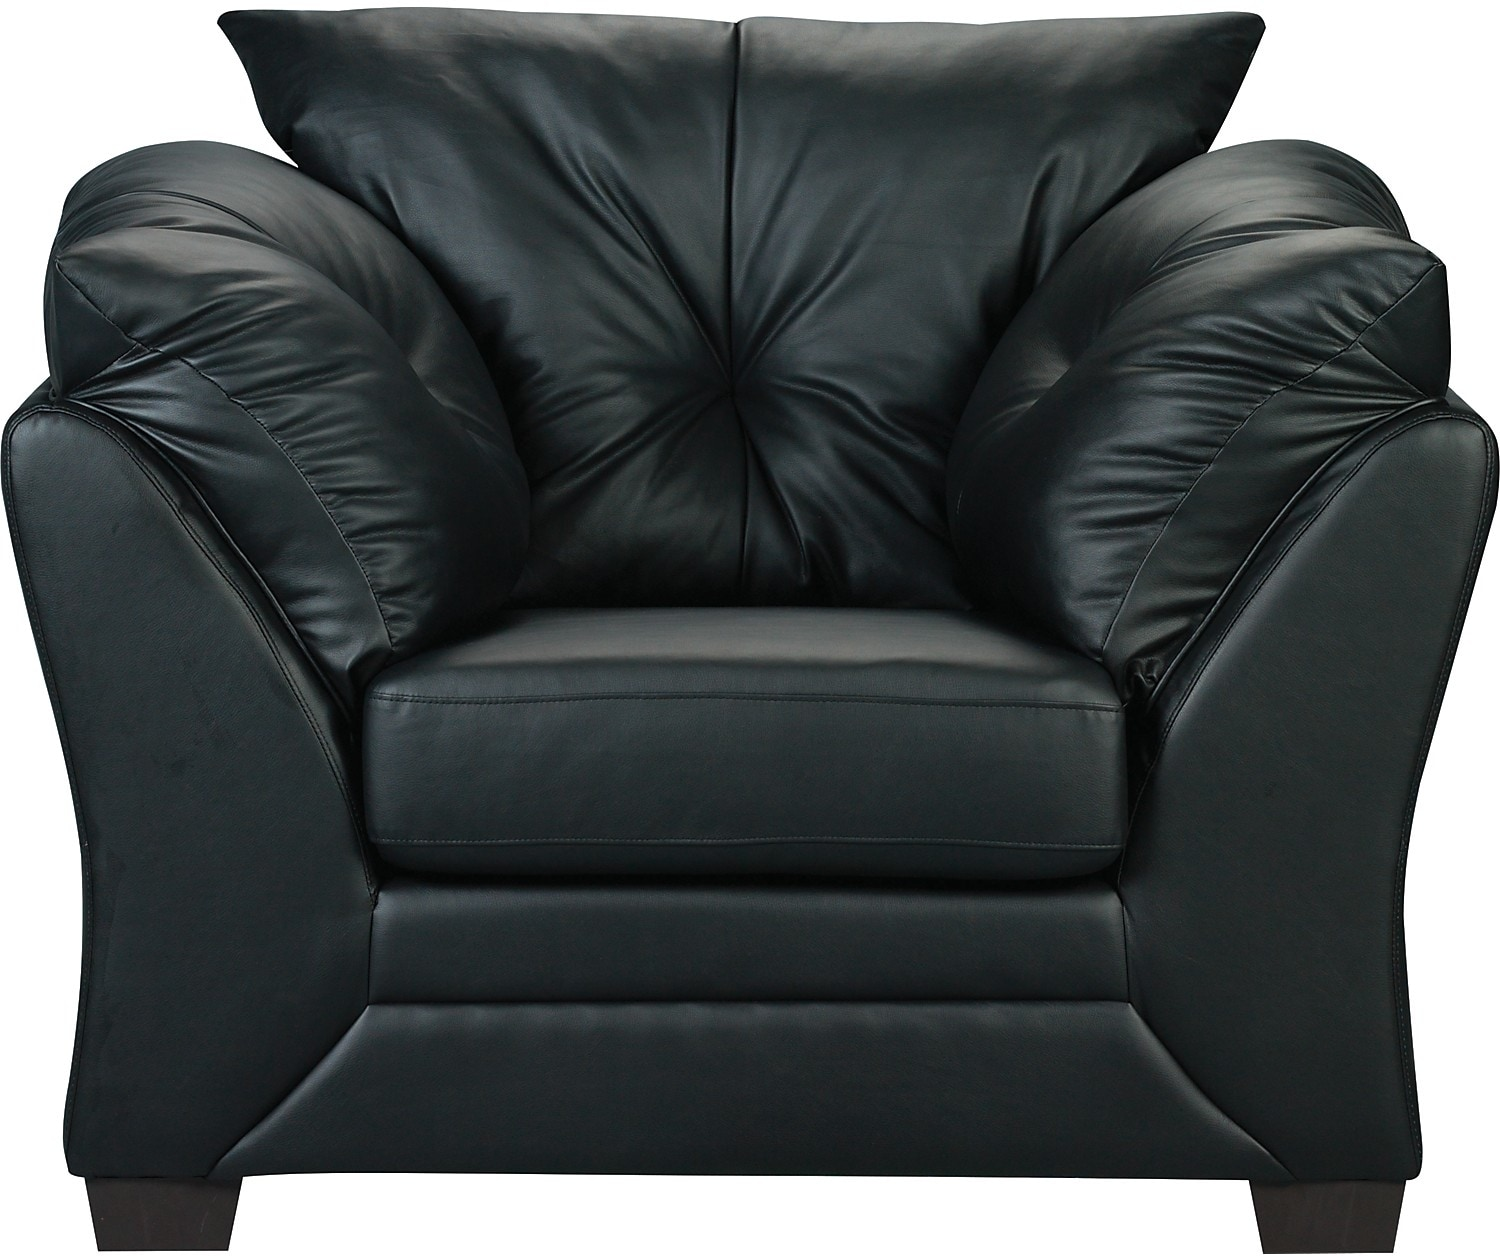 Living Room Furniture - Max Faux Leather Chair - Black